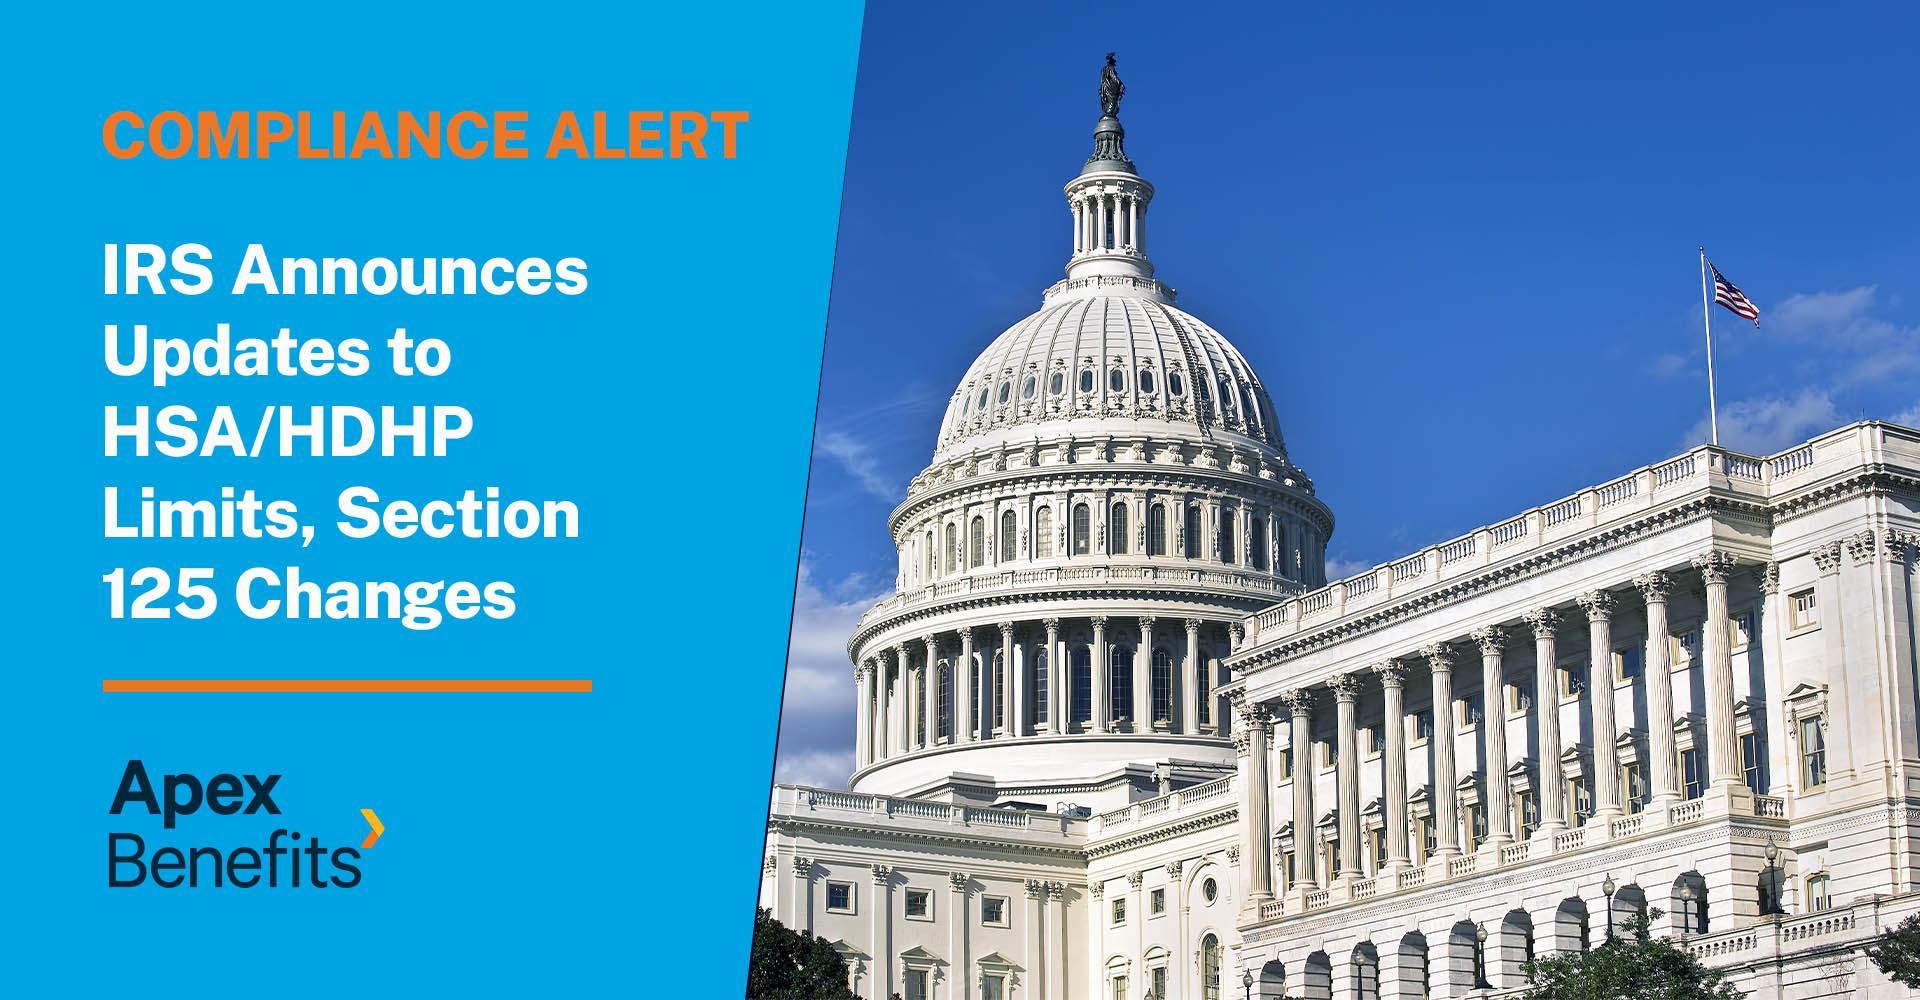 Compliance Alert: IRS Announces Updates to Section 125 Change Rules, HSA/HDHP Limits